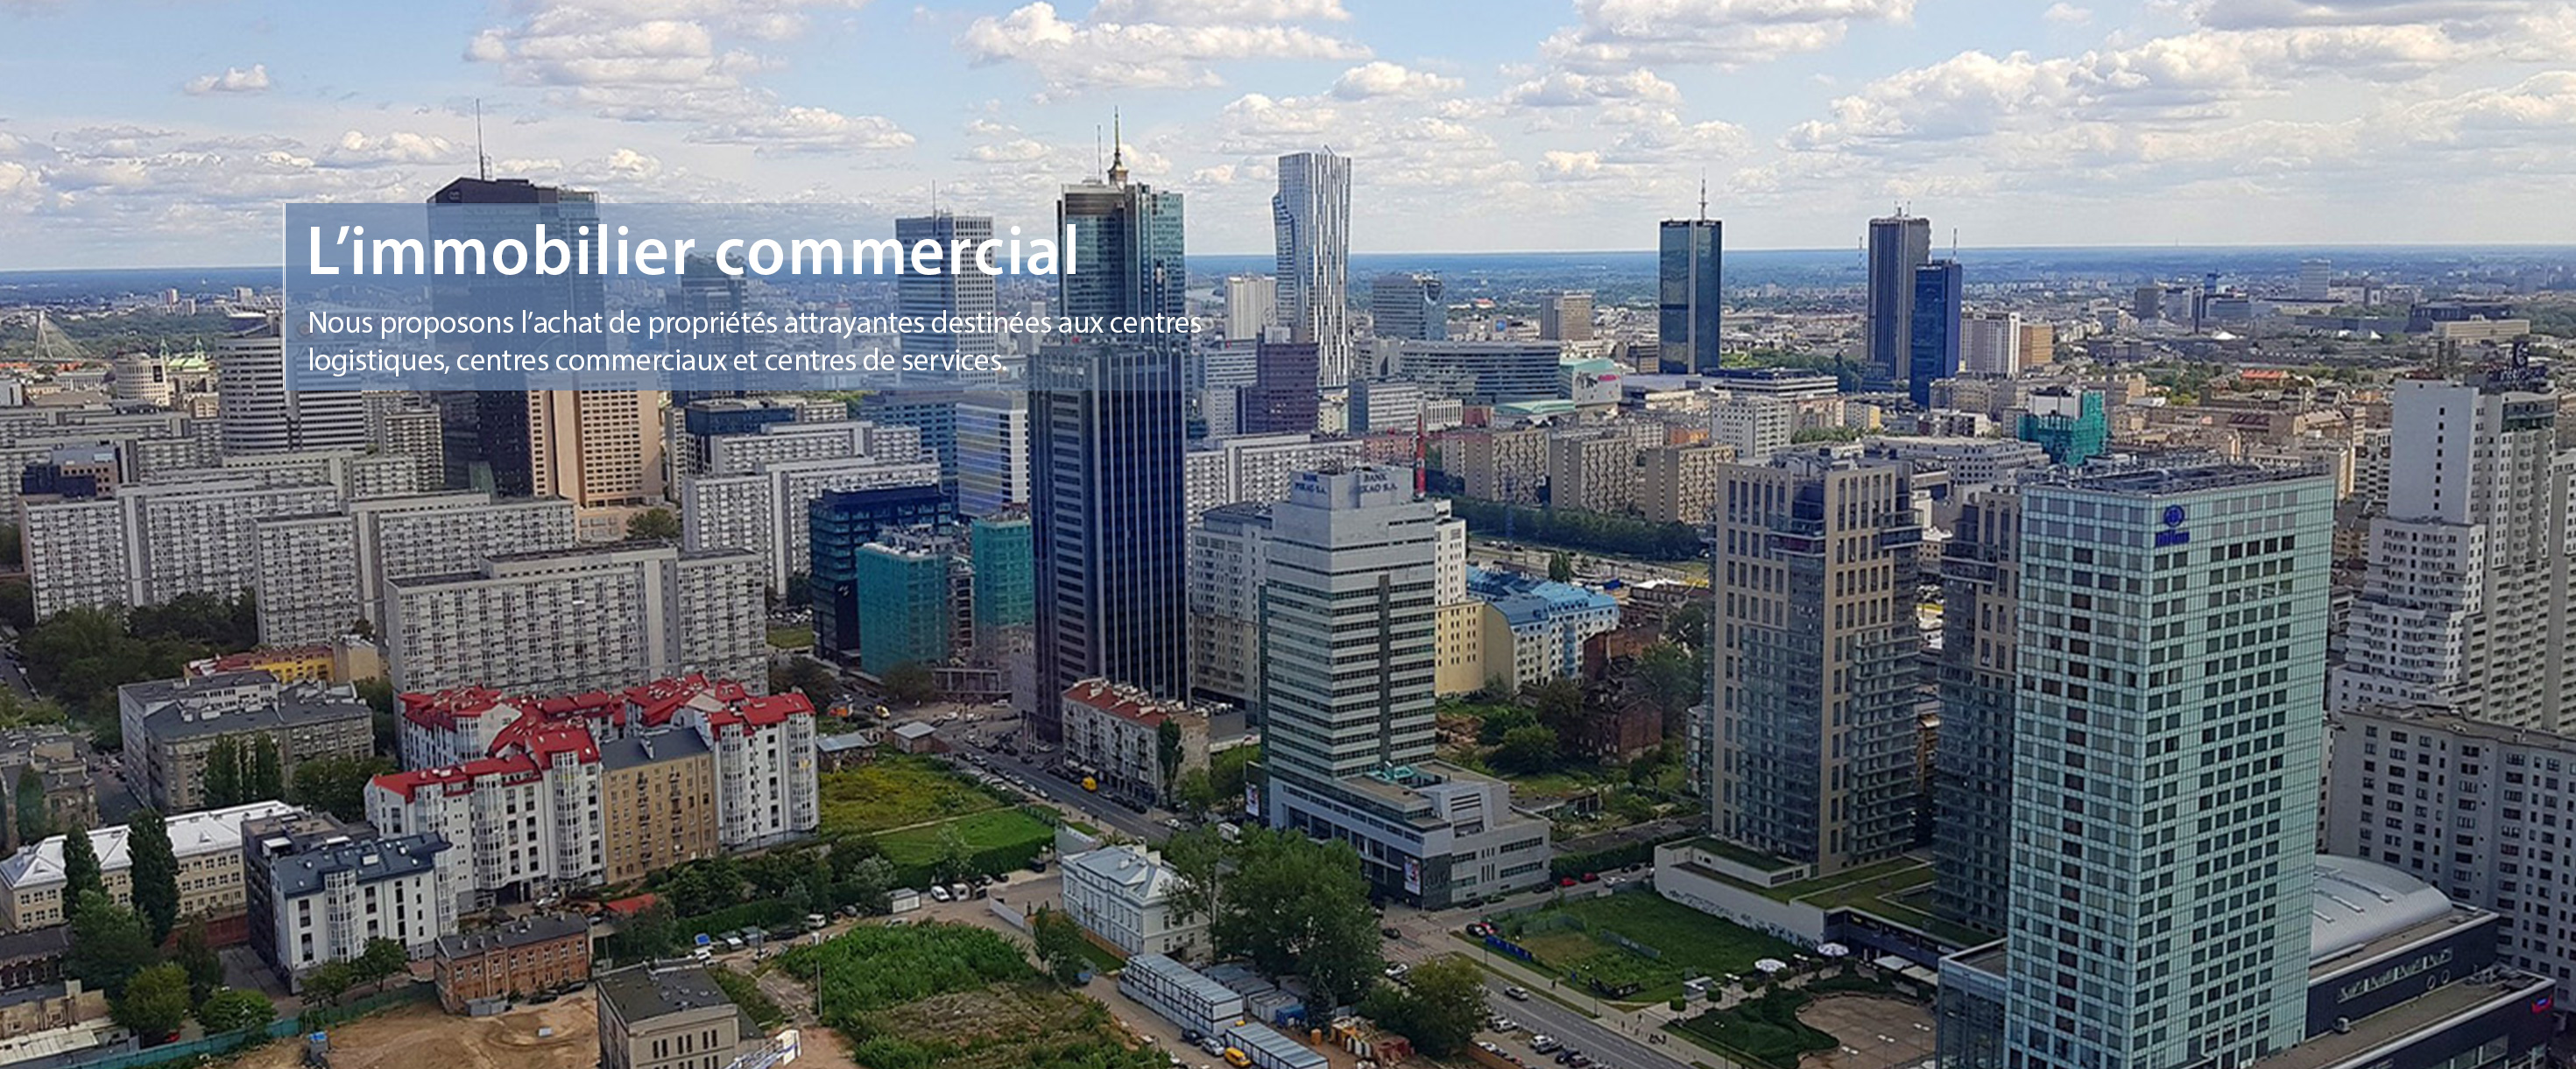 L'immobilier commercial